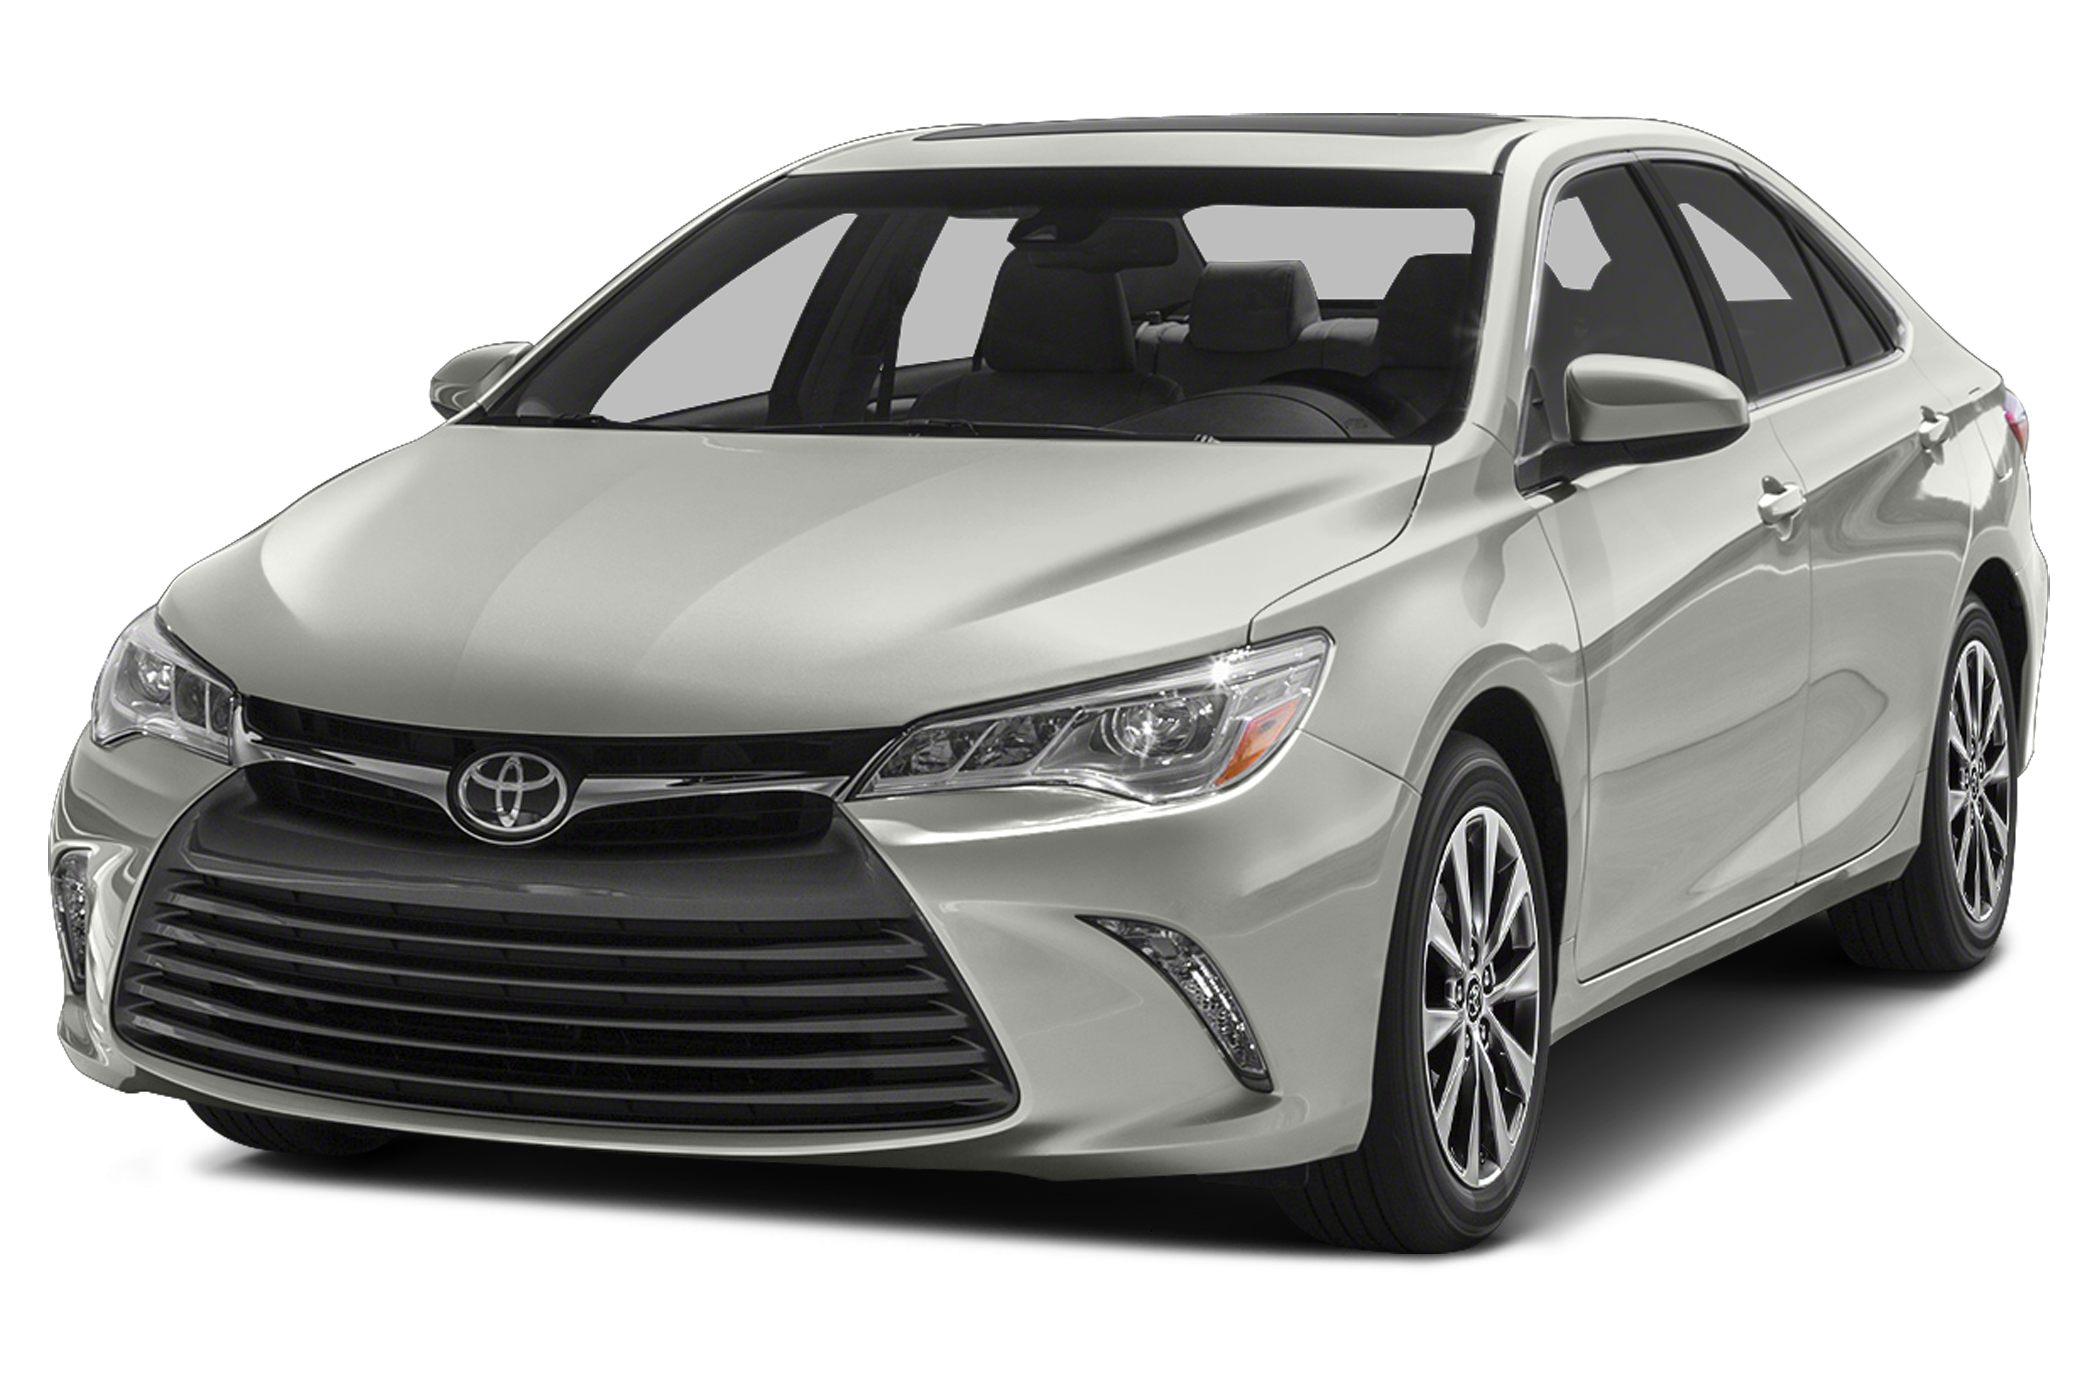 2015 Toyota Camry LE Sedan for sale in Bradenton for $24,843 with 0 miles.